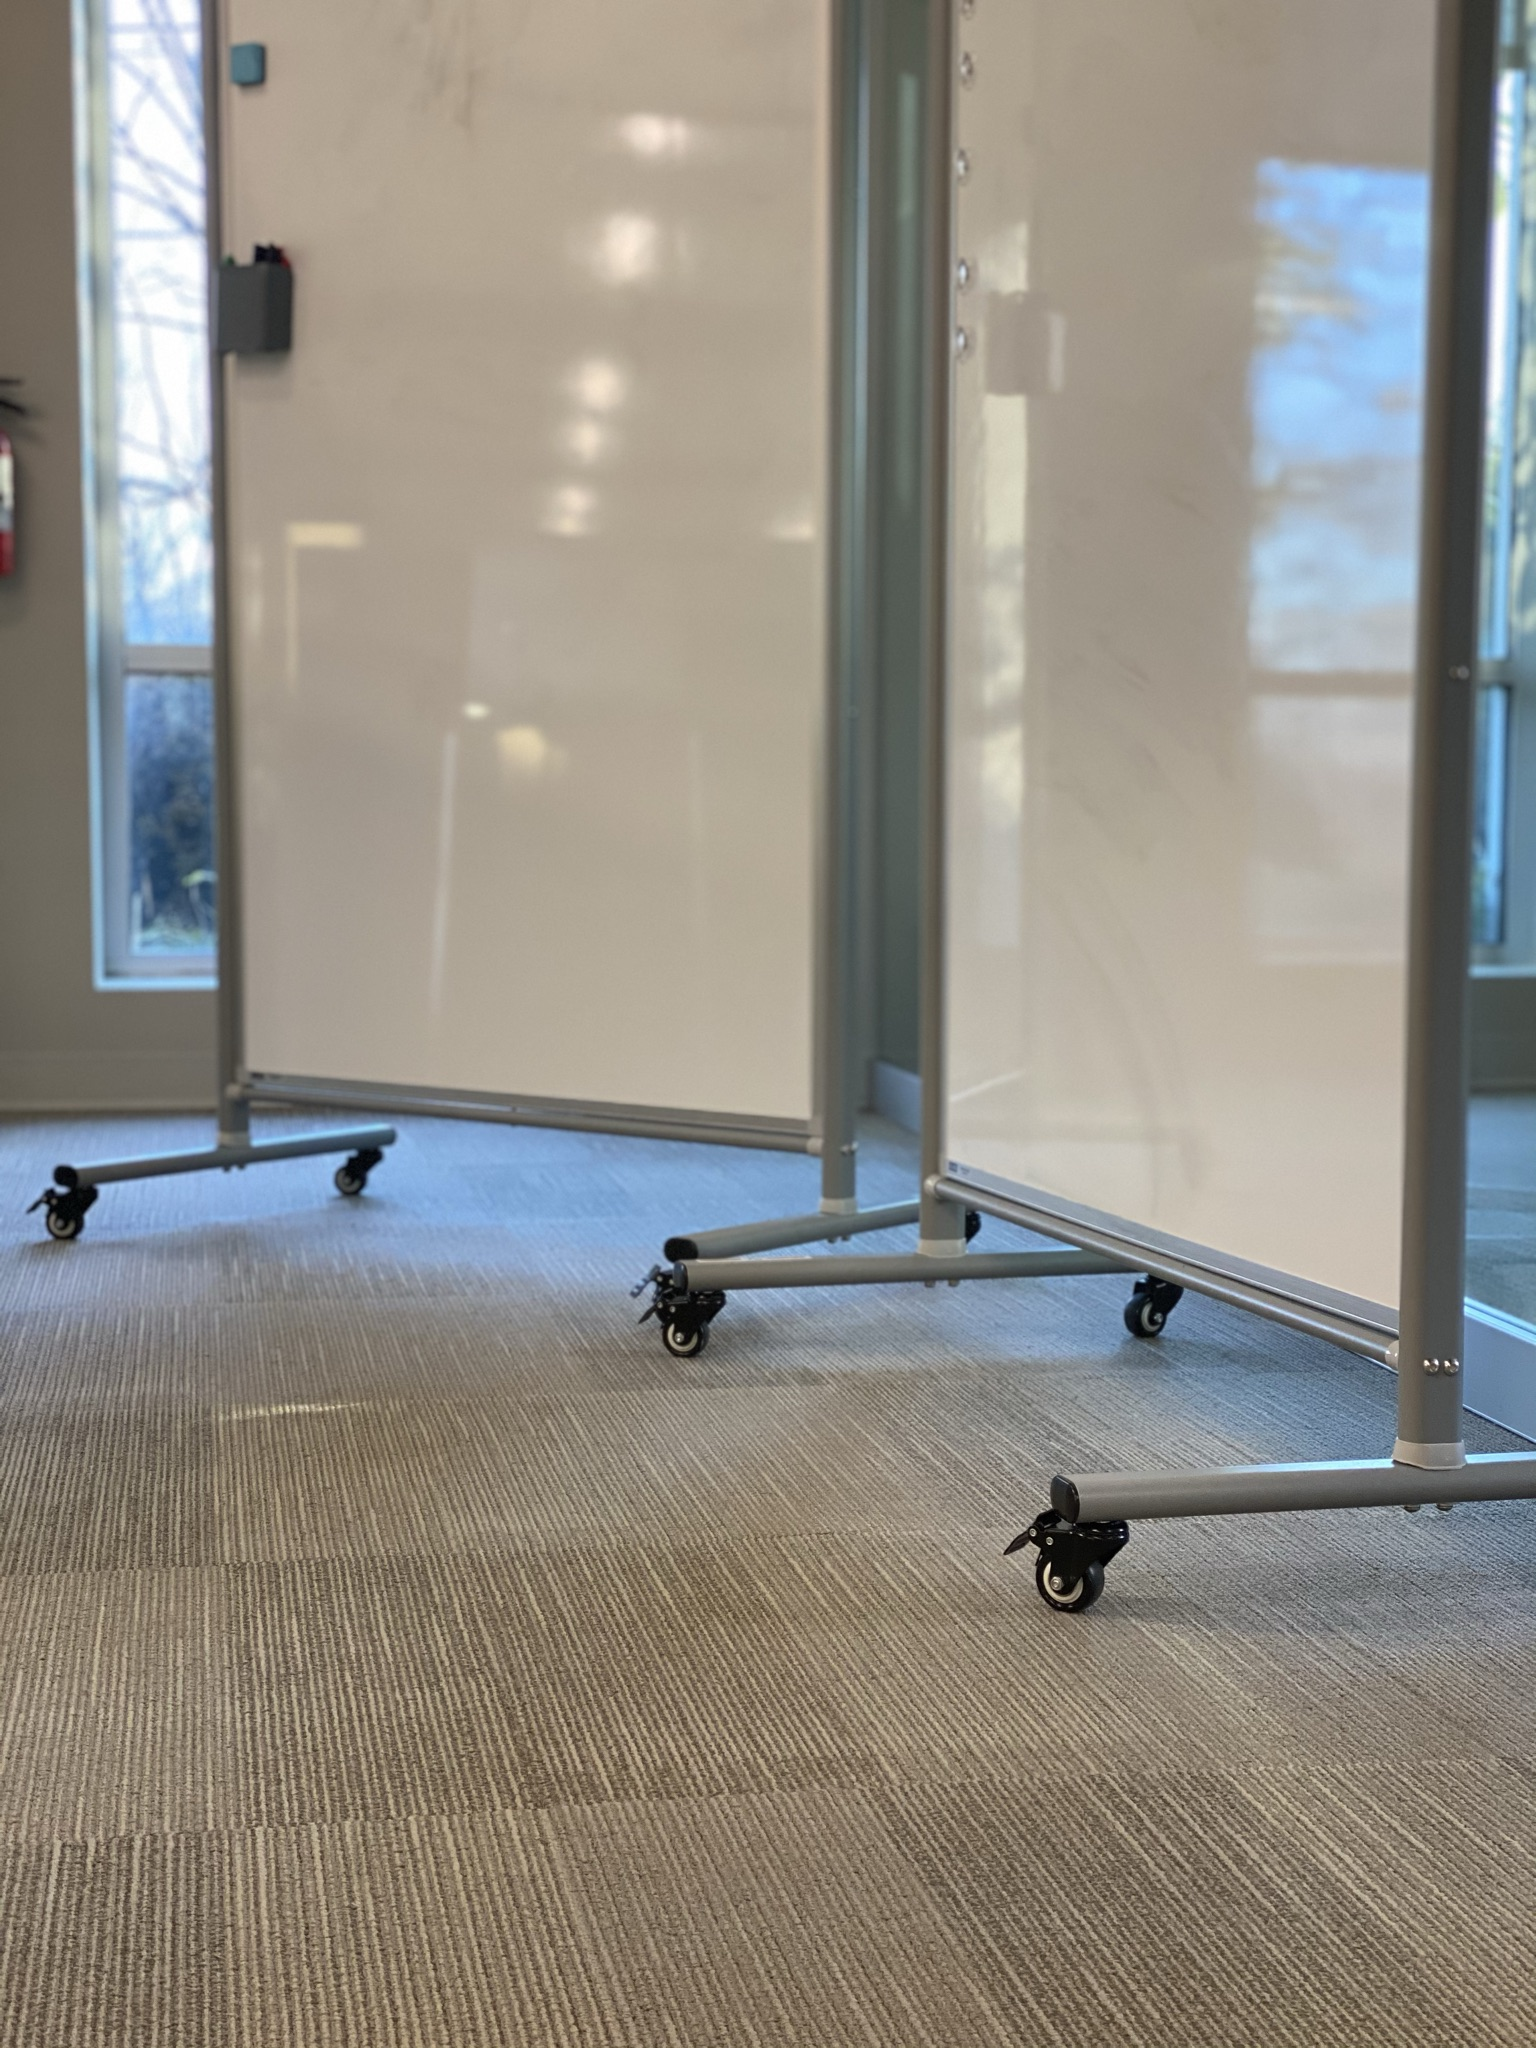 Agile Workspace - Movable Whiteboards On Wheels